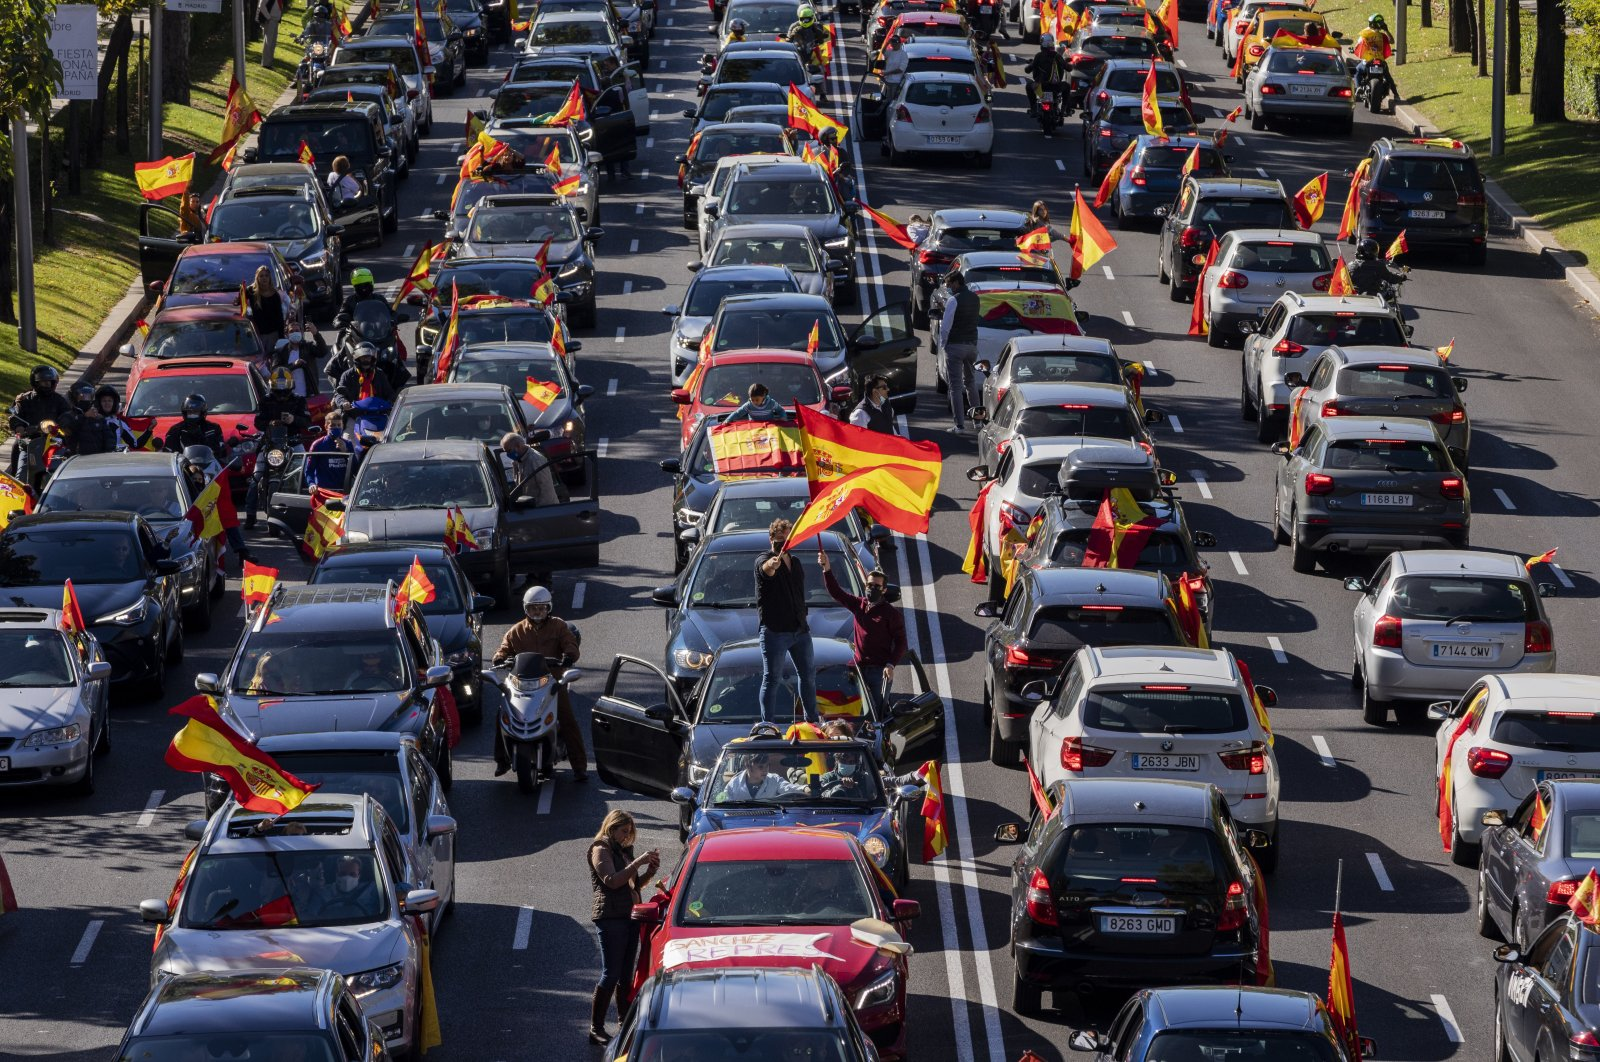 People wave Spanish flags during a drive-in protest organized by Spain's far-right Vox party against the Spanish government's handling of the nation's coronavirus outbreak din Madrid, Spain, Monday, Oct. 12, 2020. (AP Photo)